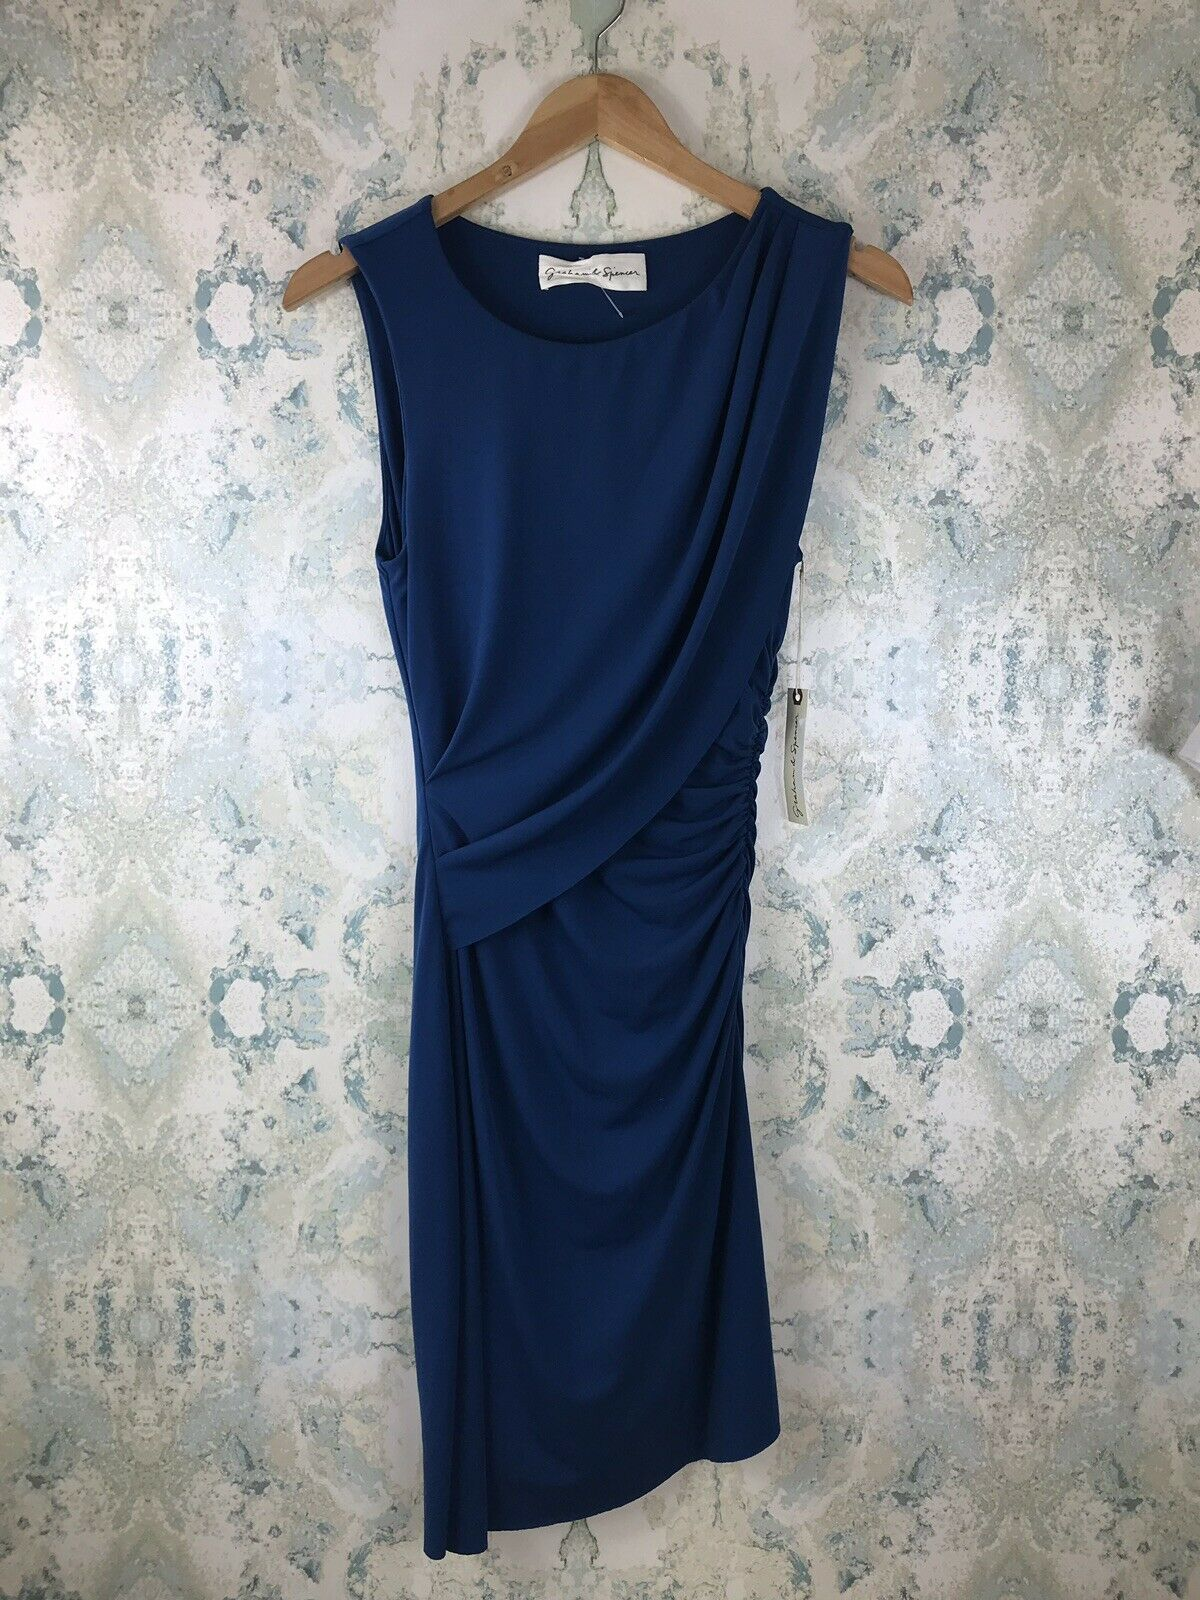 NWT Graham & Spencer Blau Tank Ruched Stretchy Casual Party Dress S